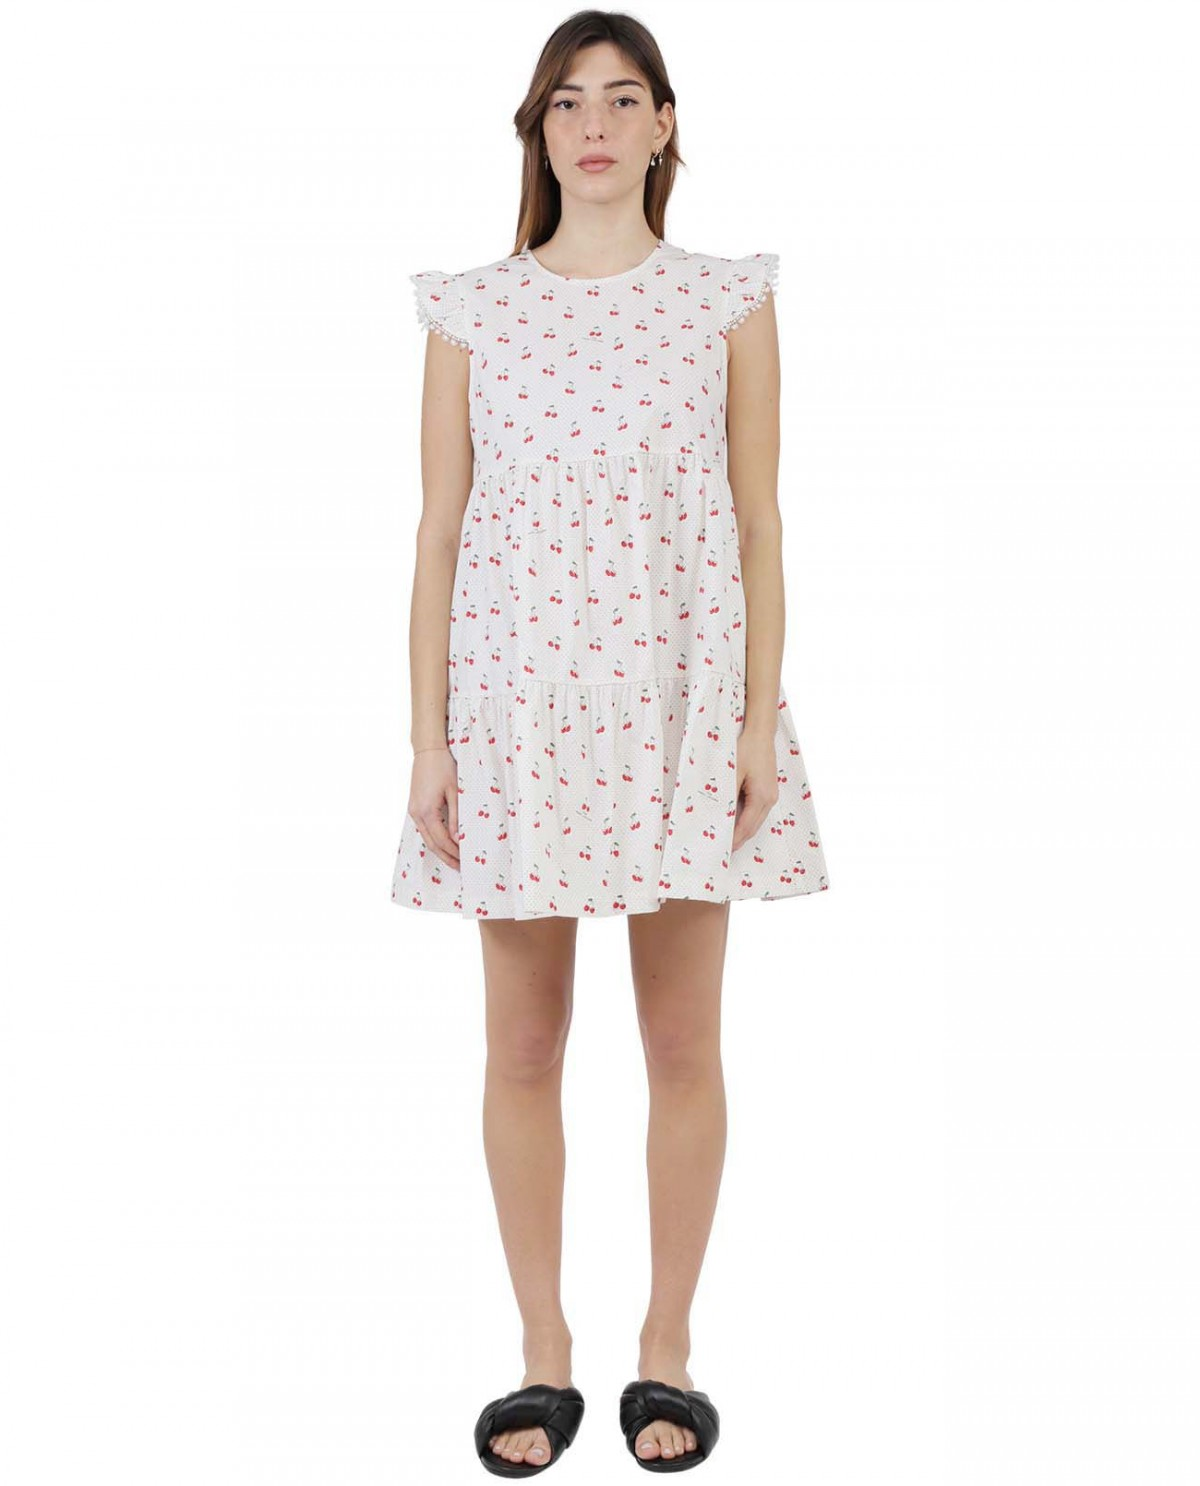 The Marc Jacobs Cherry Tent dress